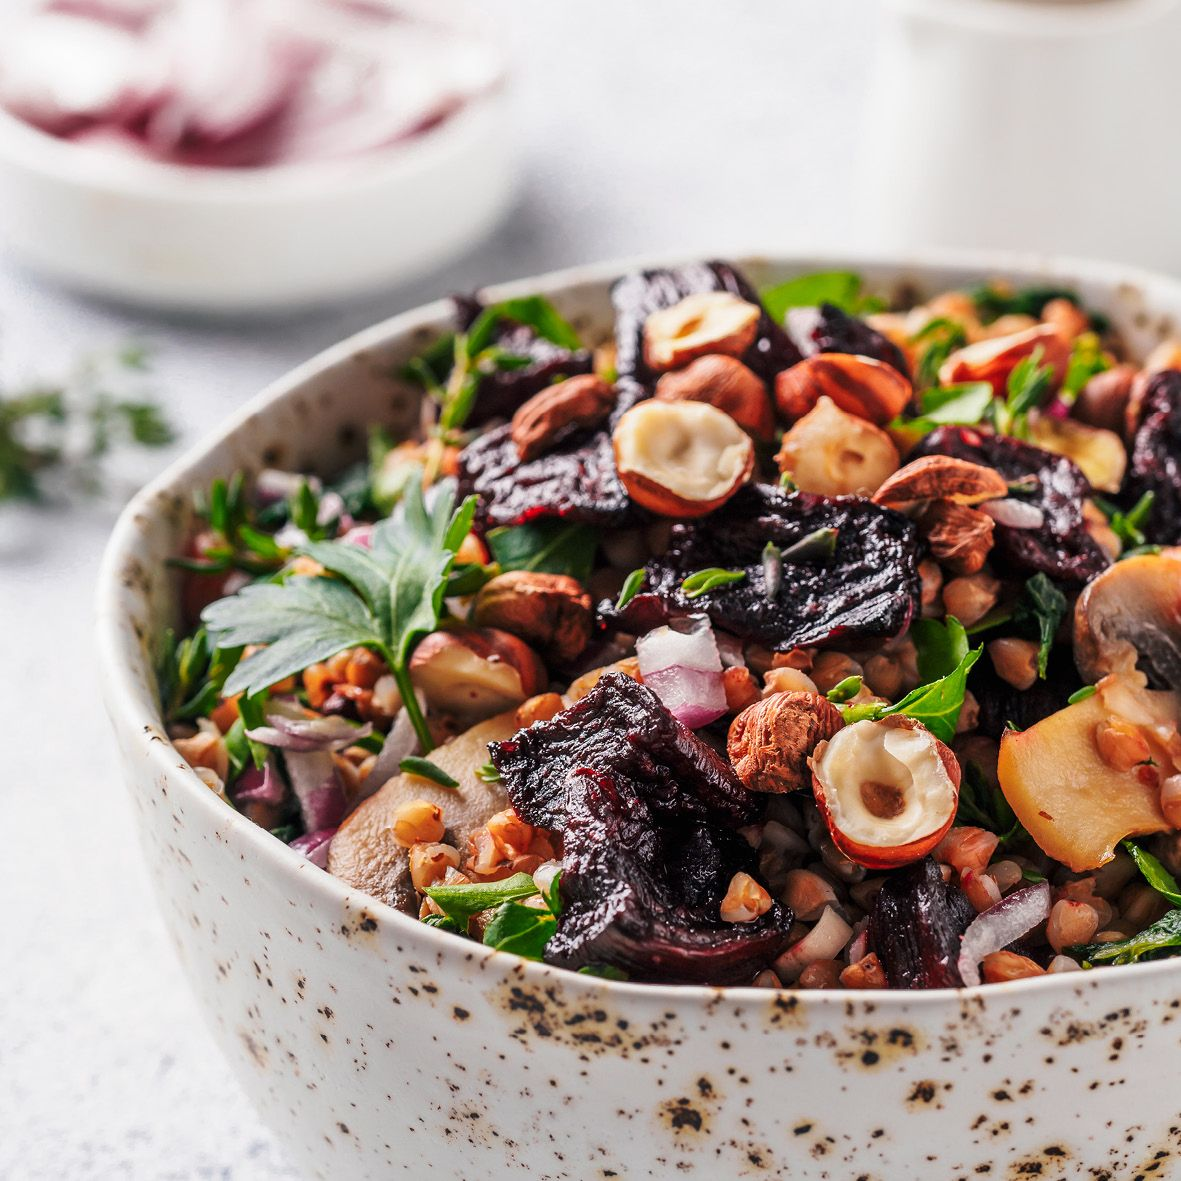 Warm_buckwheat_and_beetroot_salad.jpg